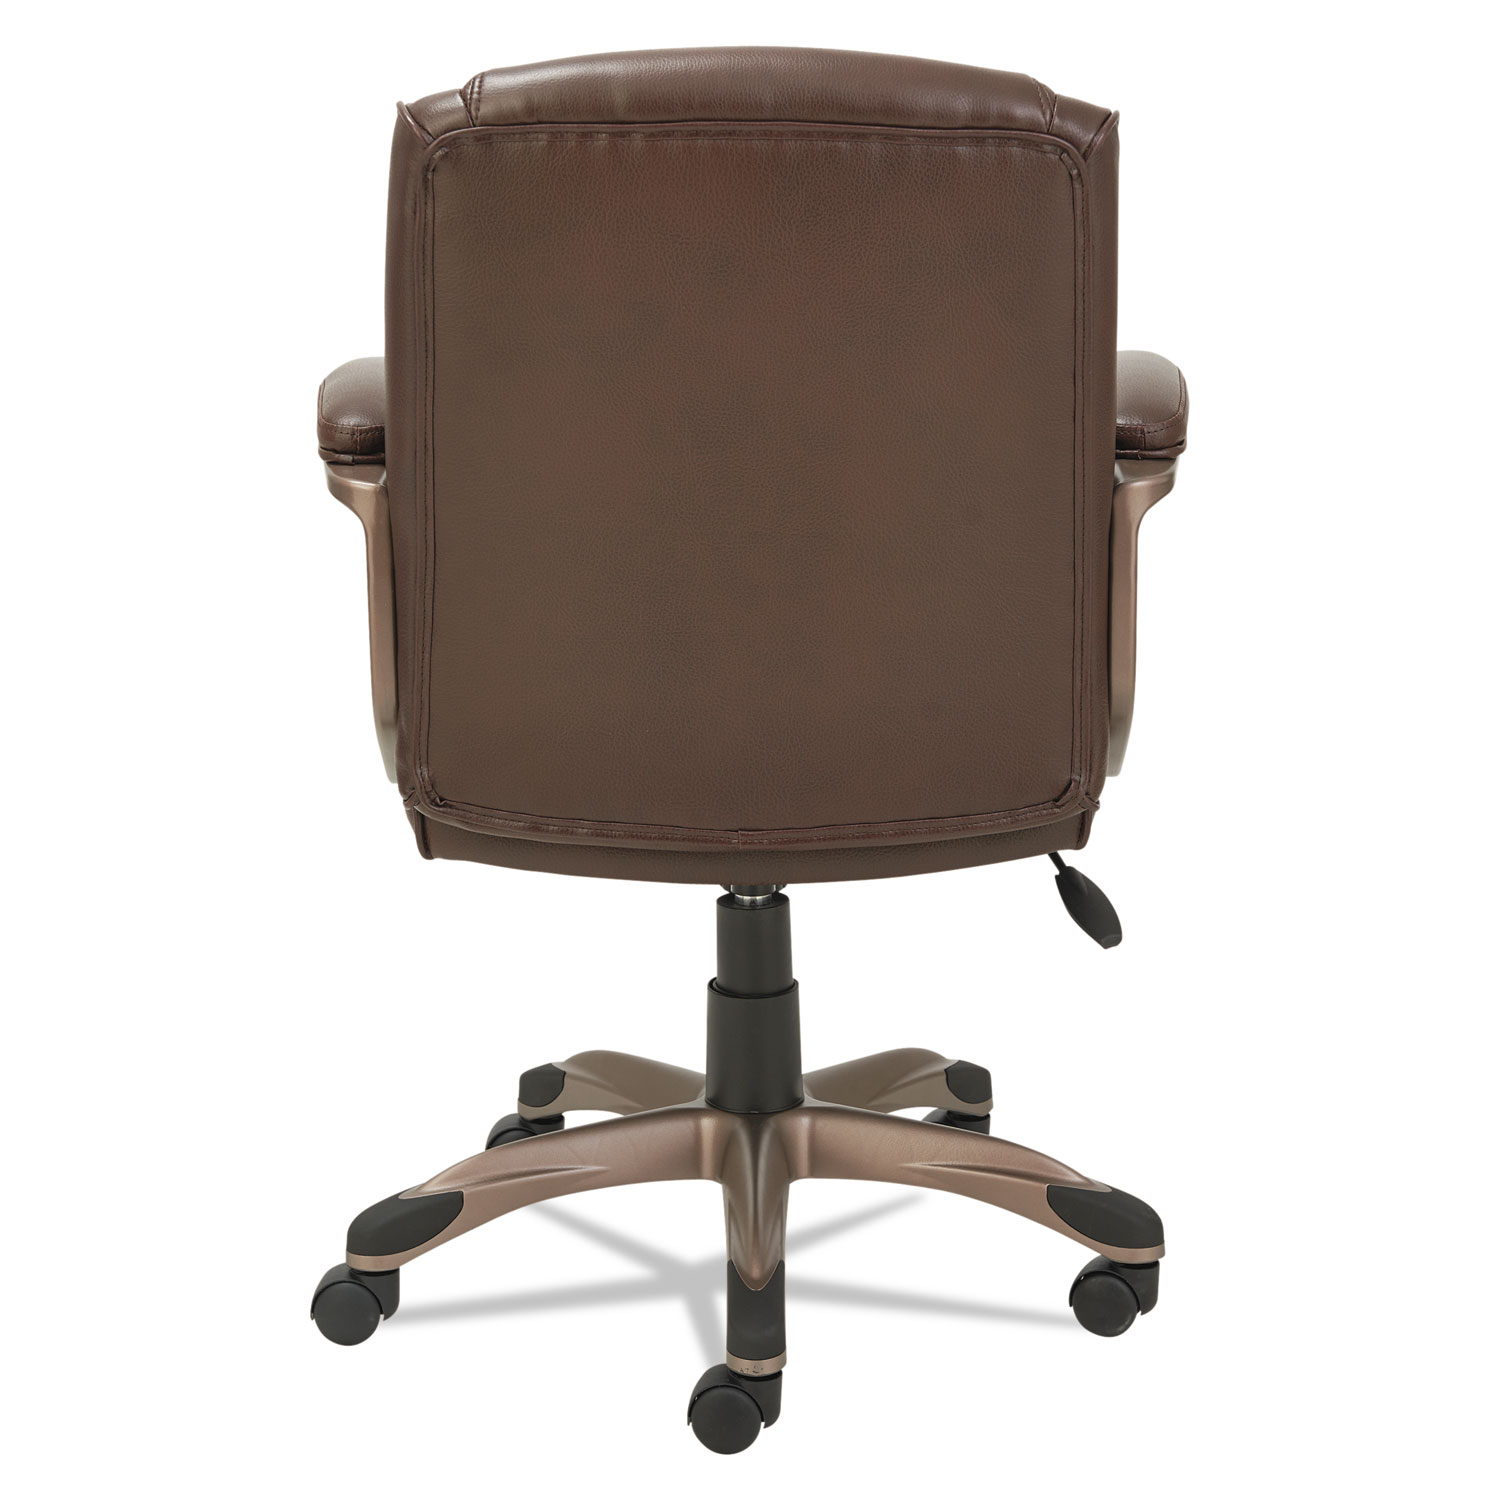 Spring Chair Alera Veon Series Low Back Leather Task Chair W Coil Spring Cushion Brown